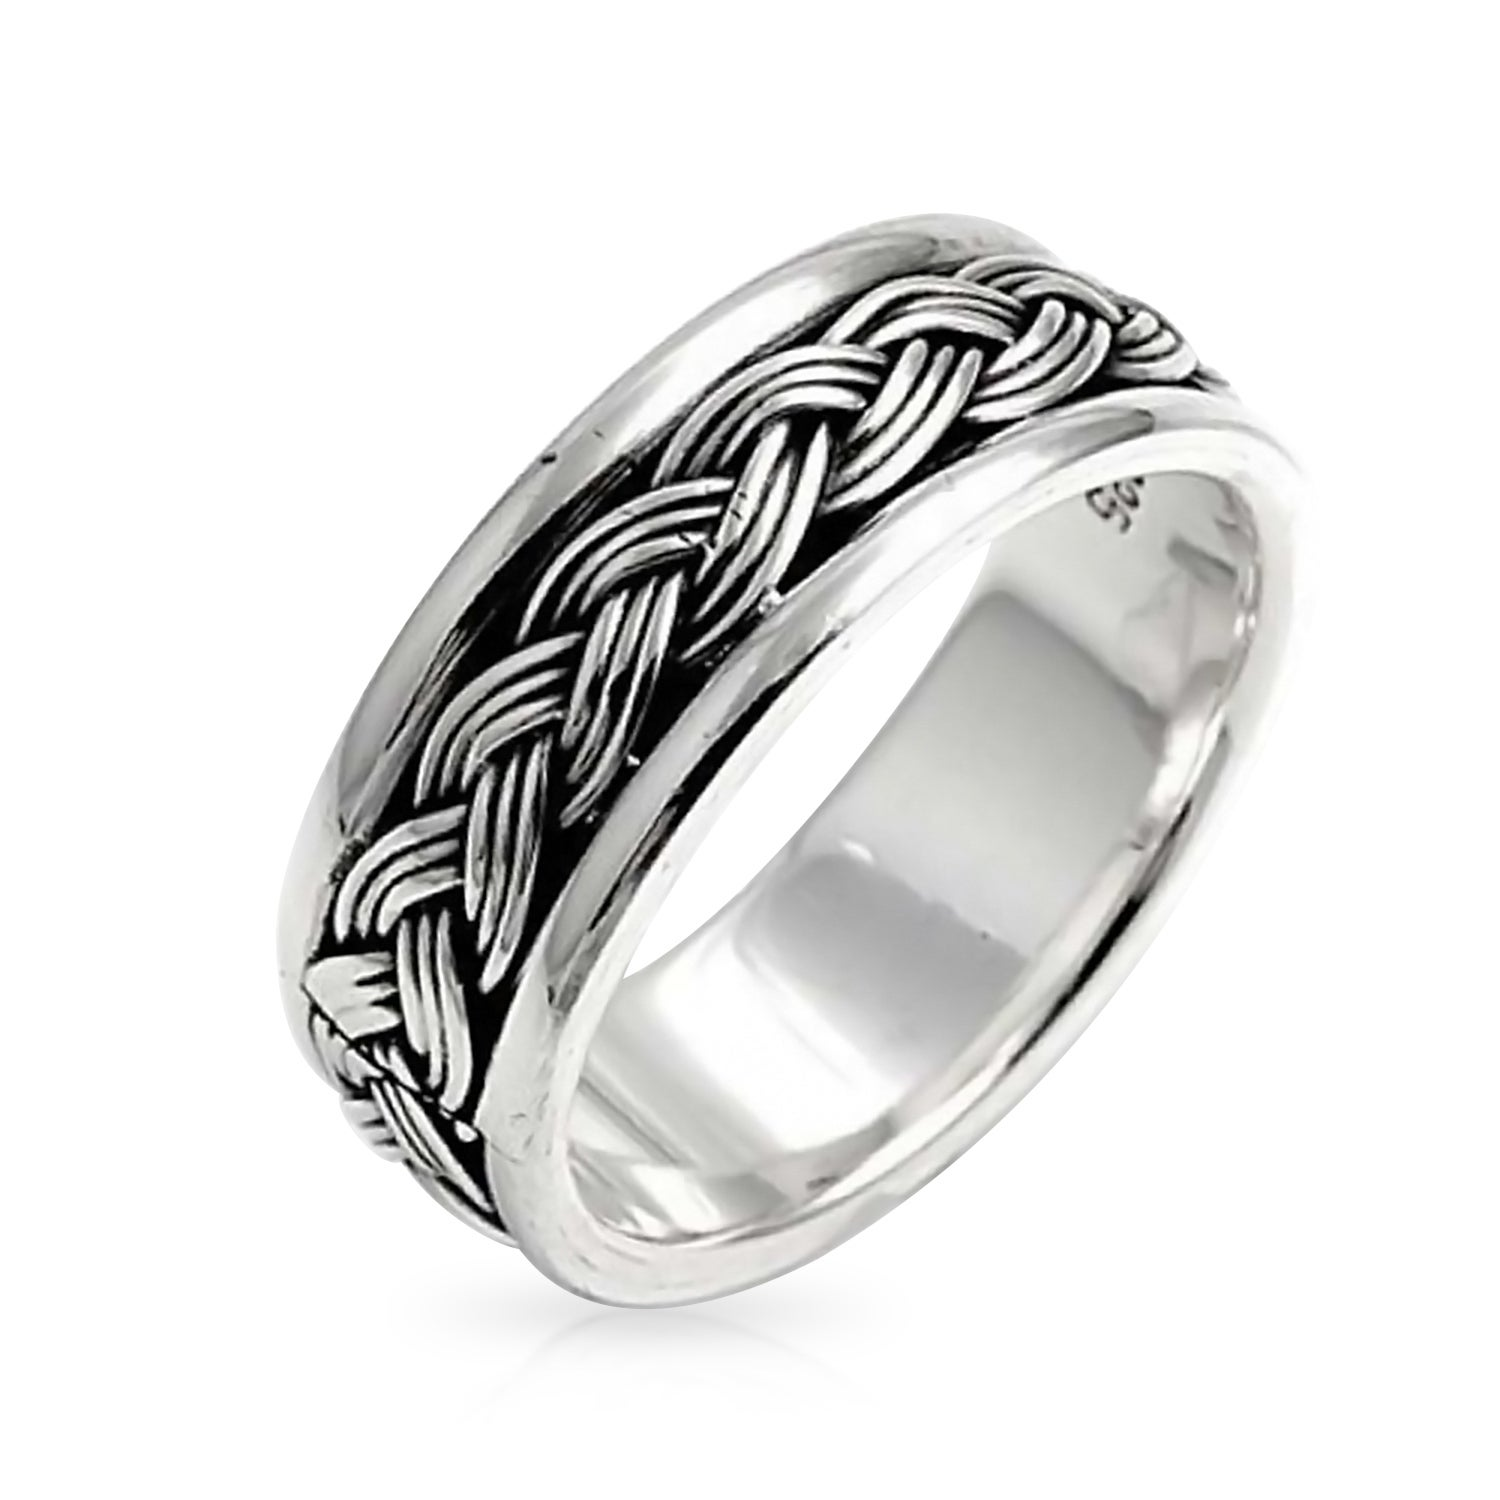 925 Sterling Silver Polished /& Textured Rope Heart Ring Size 6-8